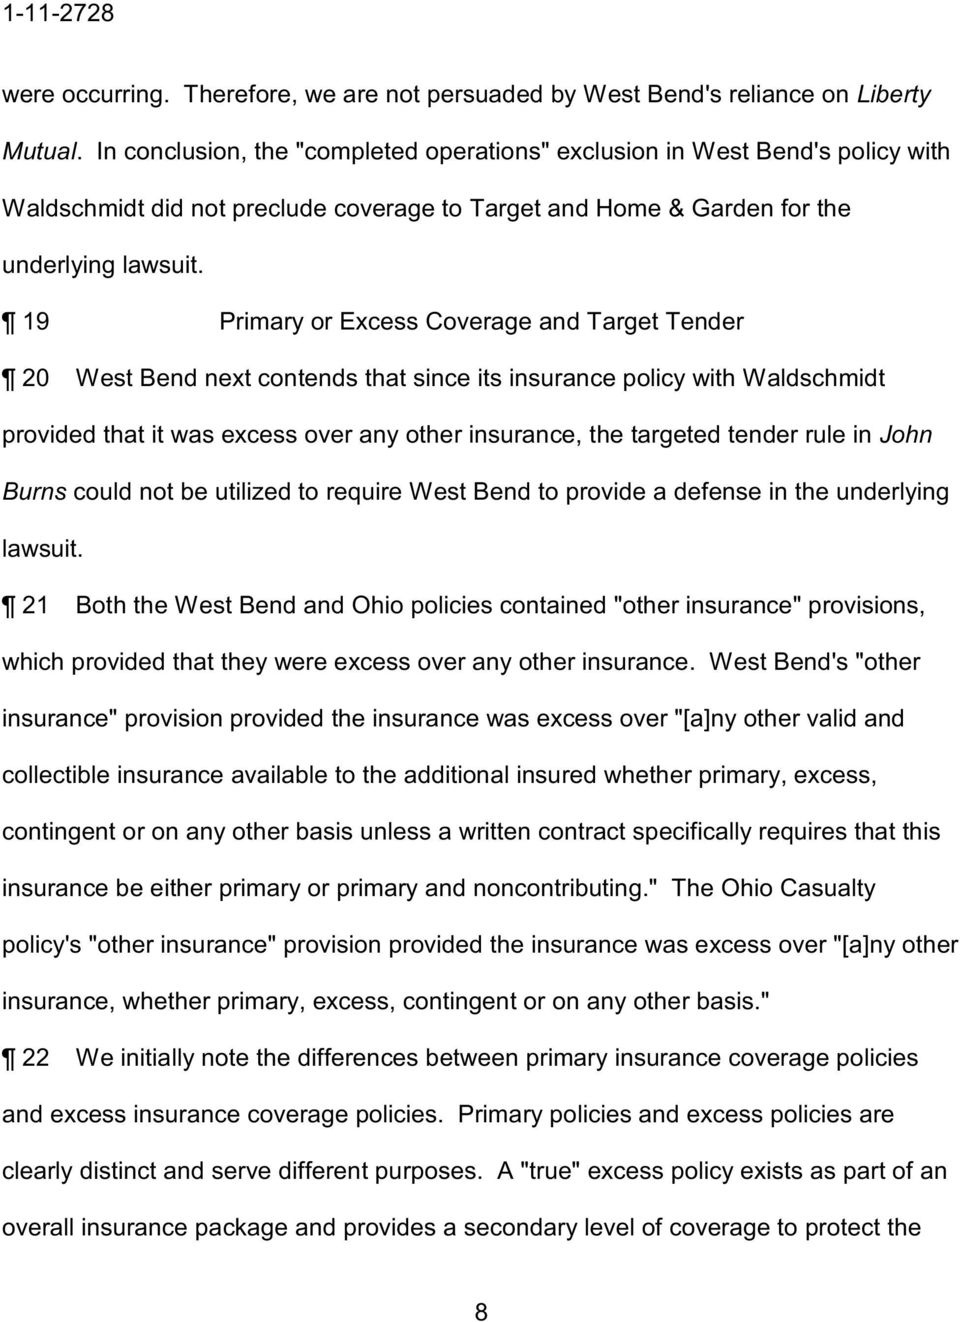 19 Primary or Excess Coverage and Target Tender 20 West Bend next contends that since its insurance policy with Waldschmidt provided that it was excess over any other insurance, the targeted tender